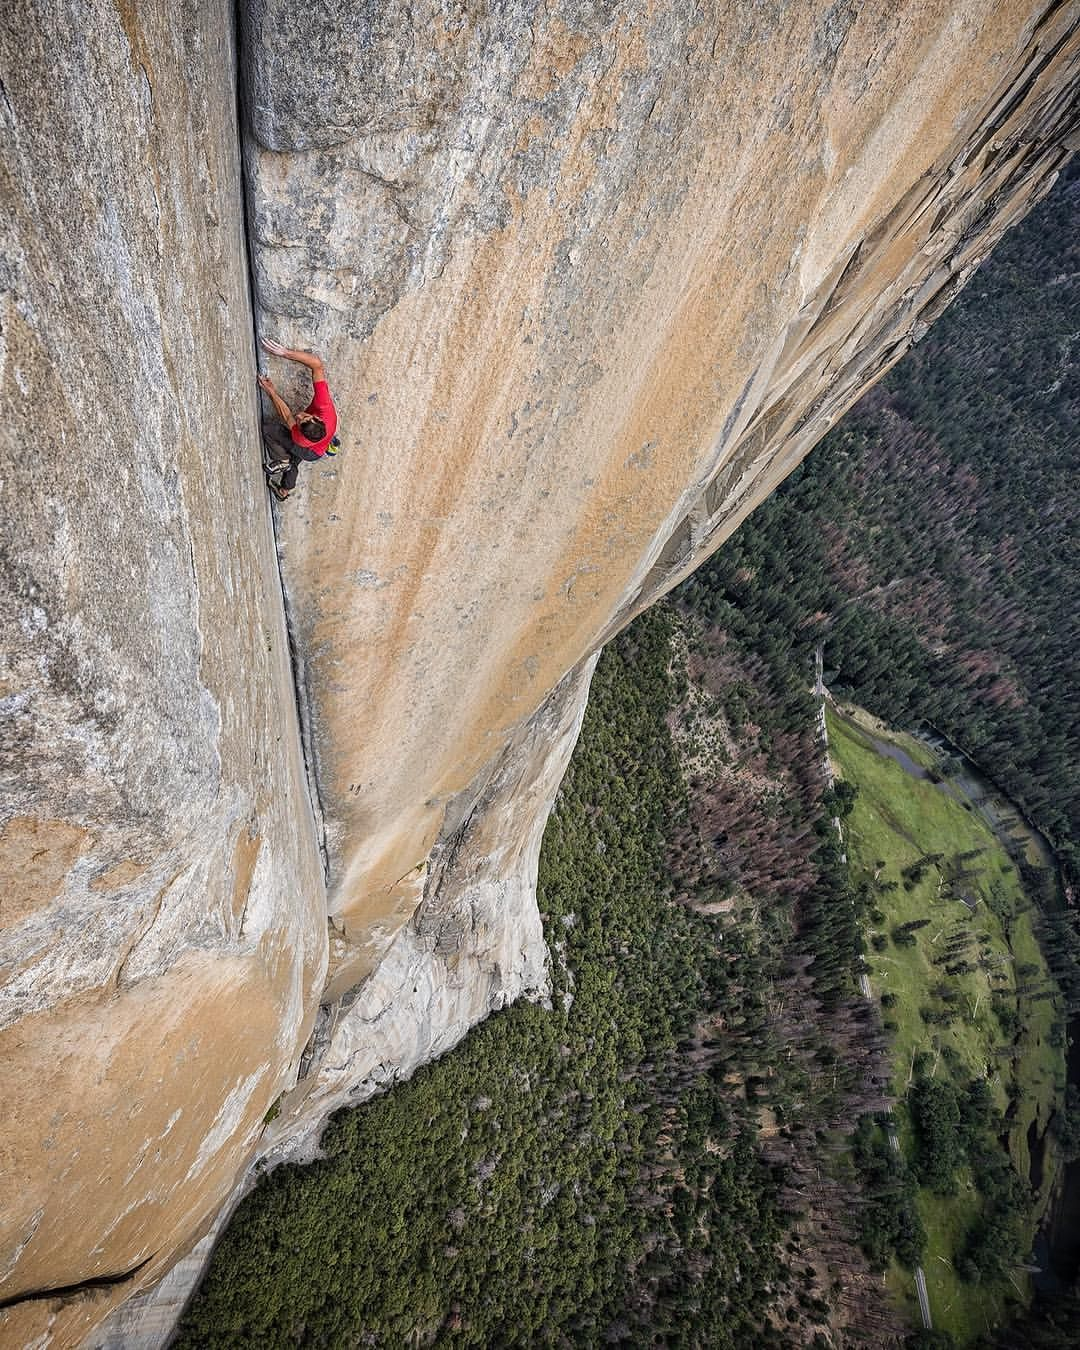 Photo By Jimmy Chin Alexhonnold Climbing The Enduro Corner On Yosemite S El Capitan Without A Rope Alex S Free Solo Of Jimmy Chin Solo Climbing El Capitan